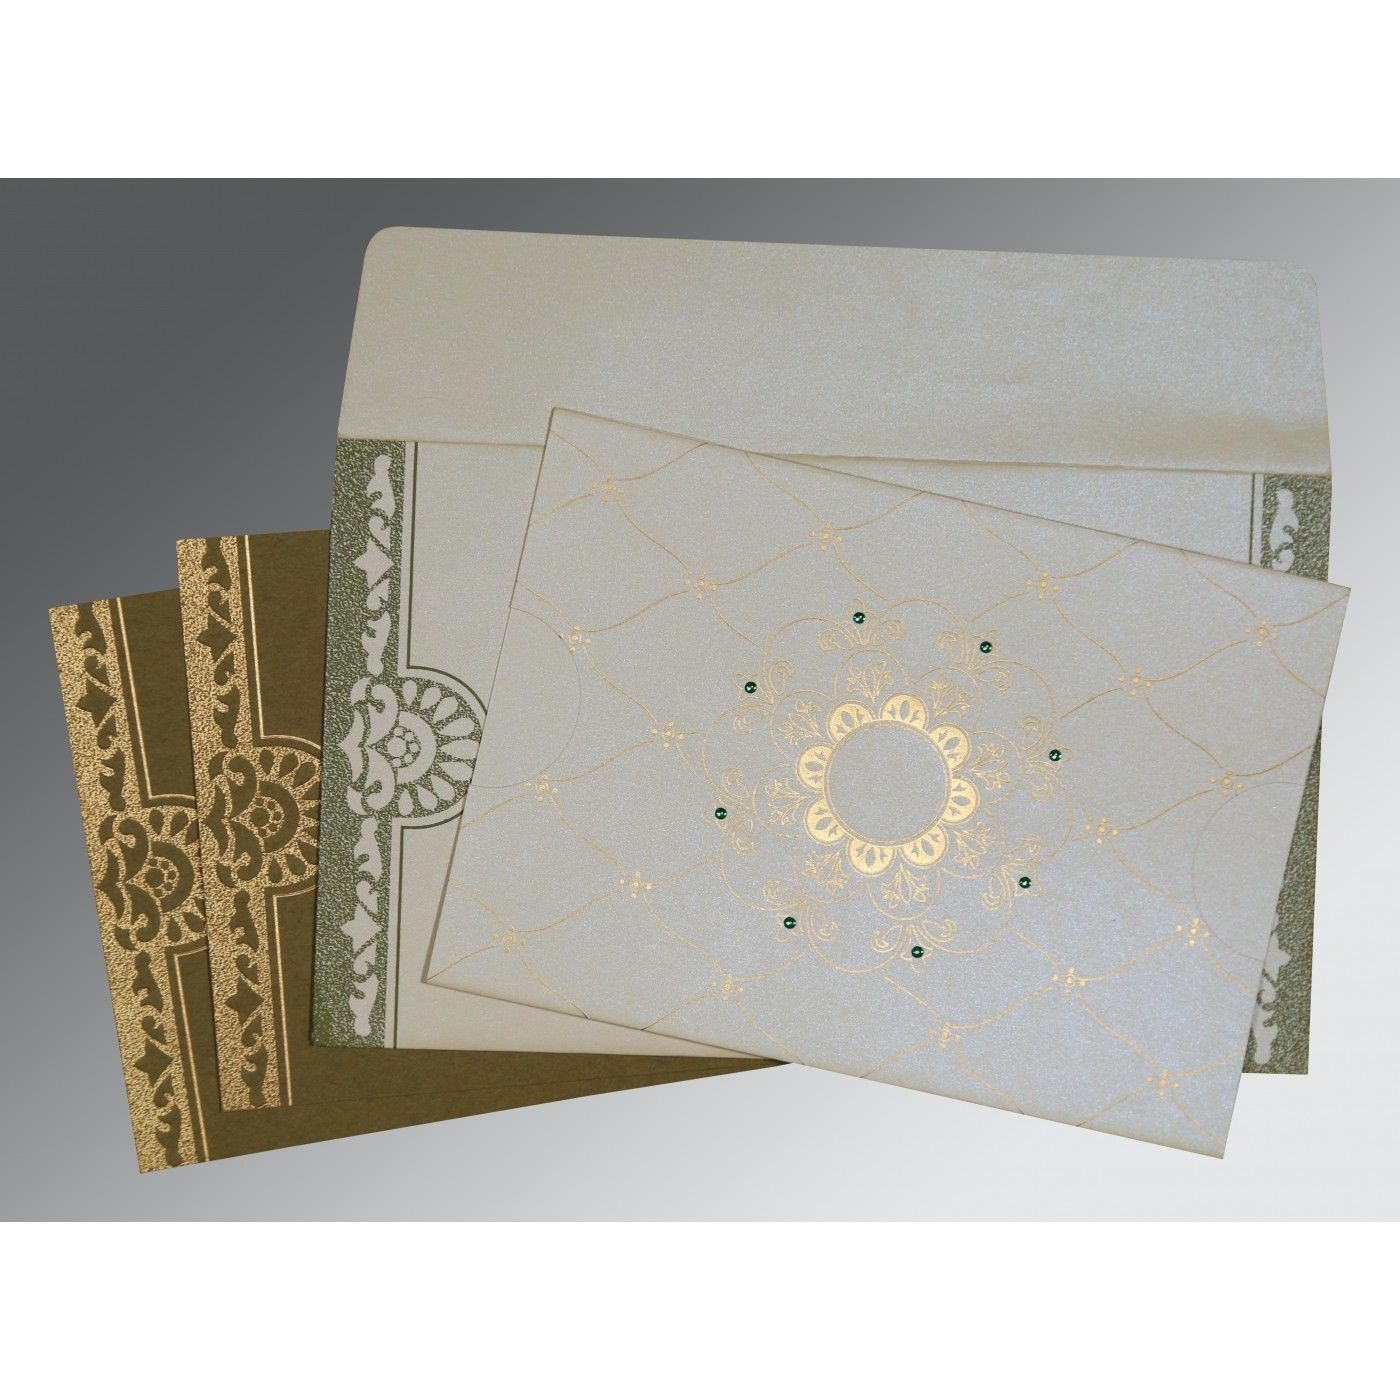 OFF-WHITE SHIMMERY FLORAL THEMED - SCREEN PRINTED WEDDING CARD : CRU-8227F - IndianWeddingCards